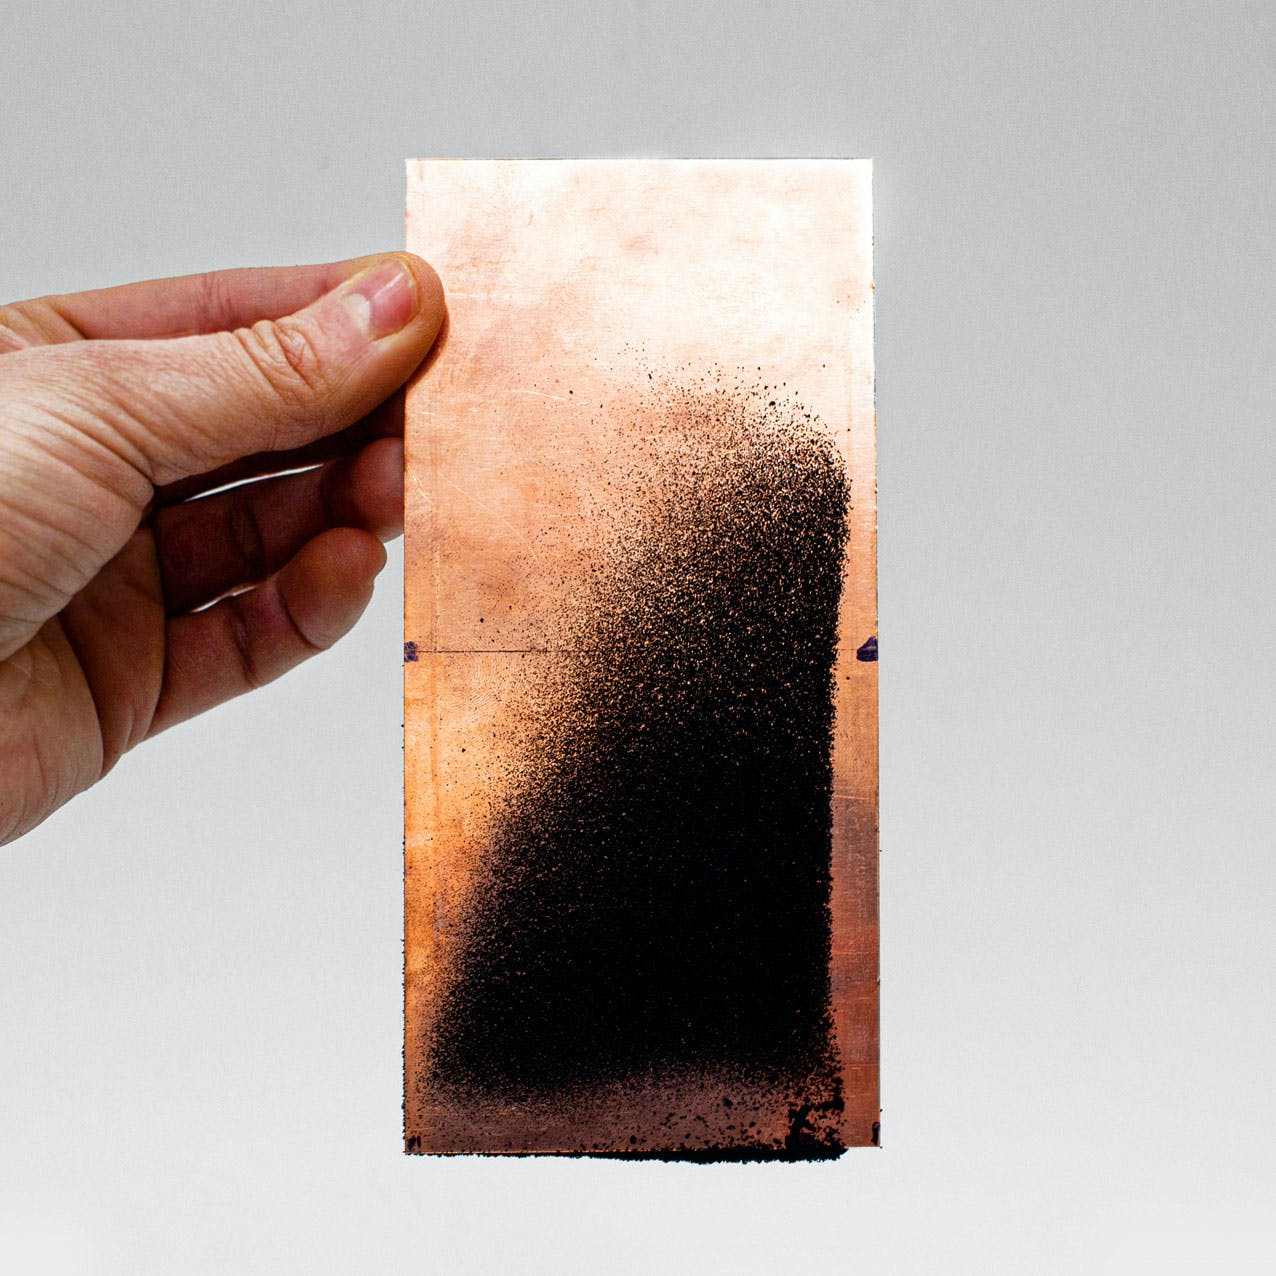 Microplastic Particles on Copper Plate. Source: The Tyre Collective